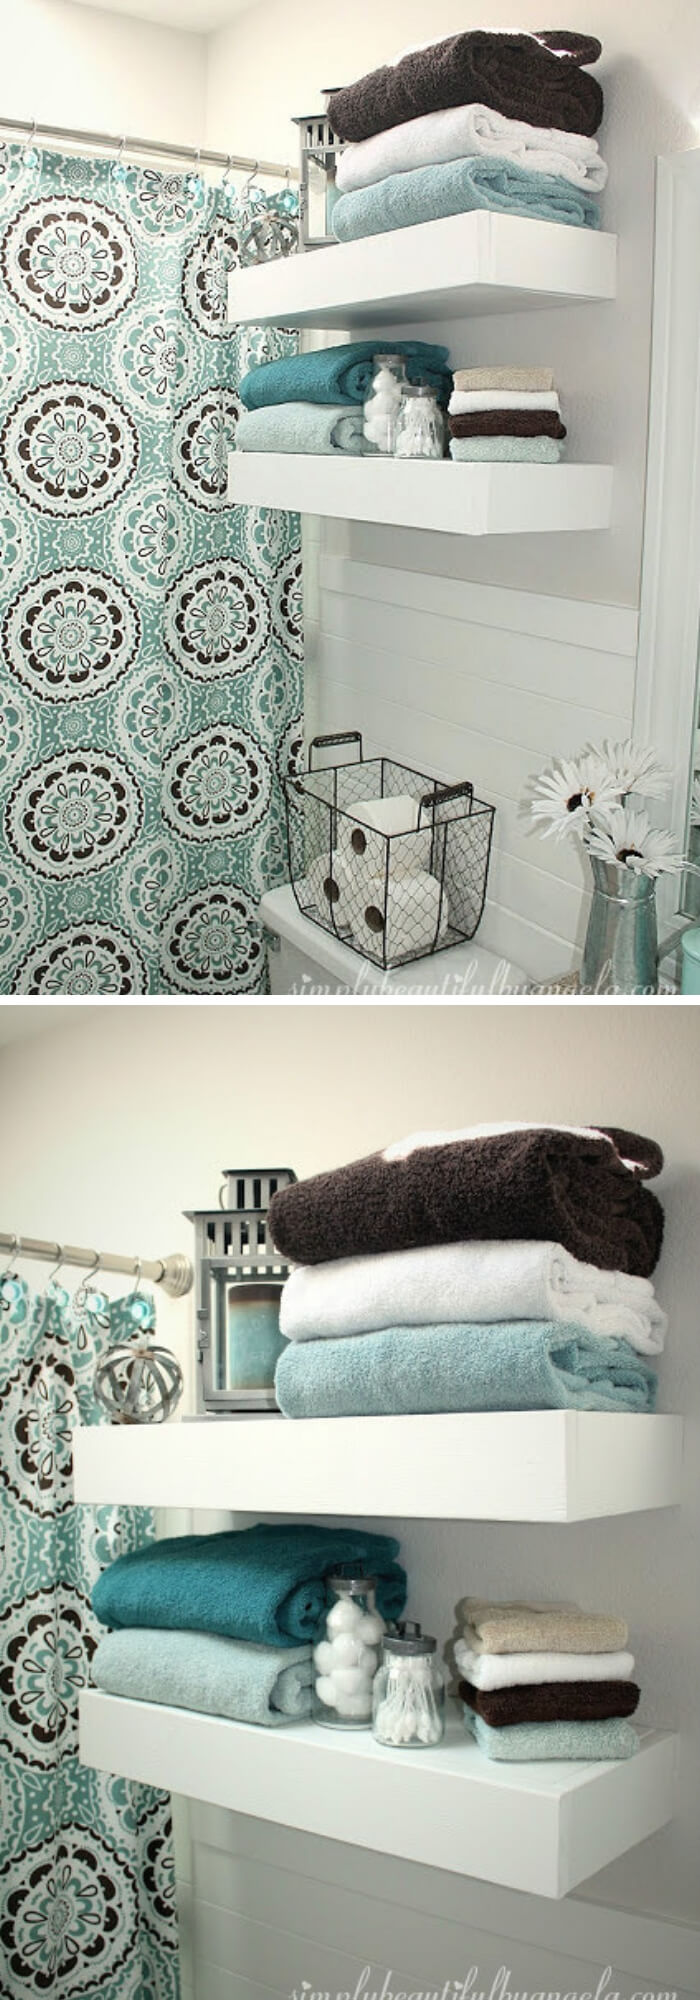 Wooden Floating Shelves | Best Over the Toilet Storage Ideas for Bathroom